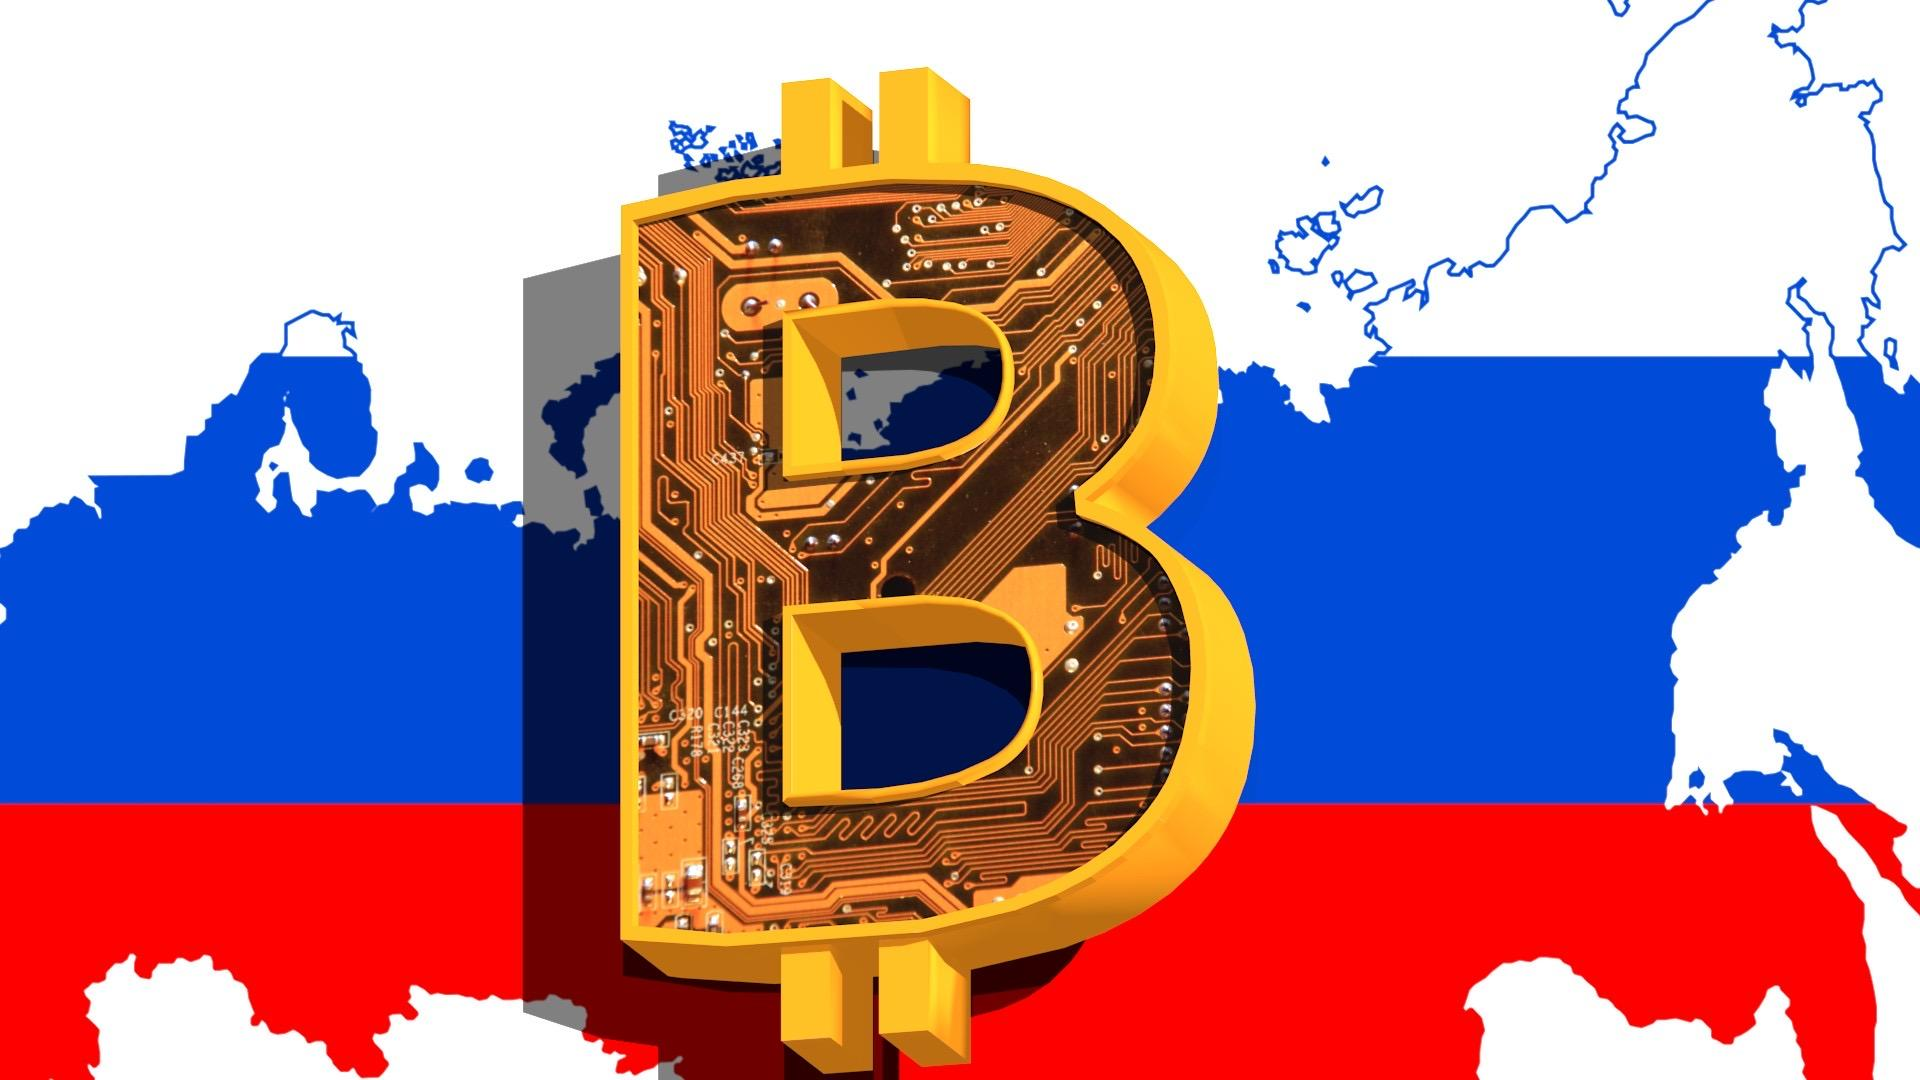 Russia's Current Stance On The Crypto Market